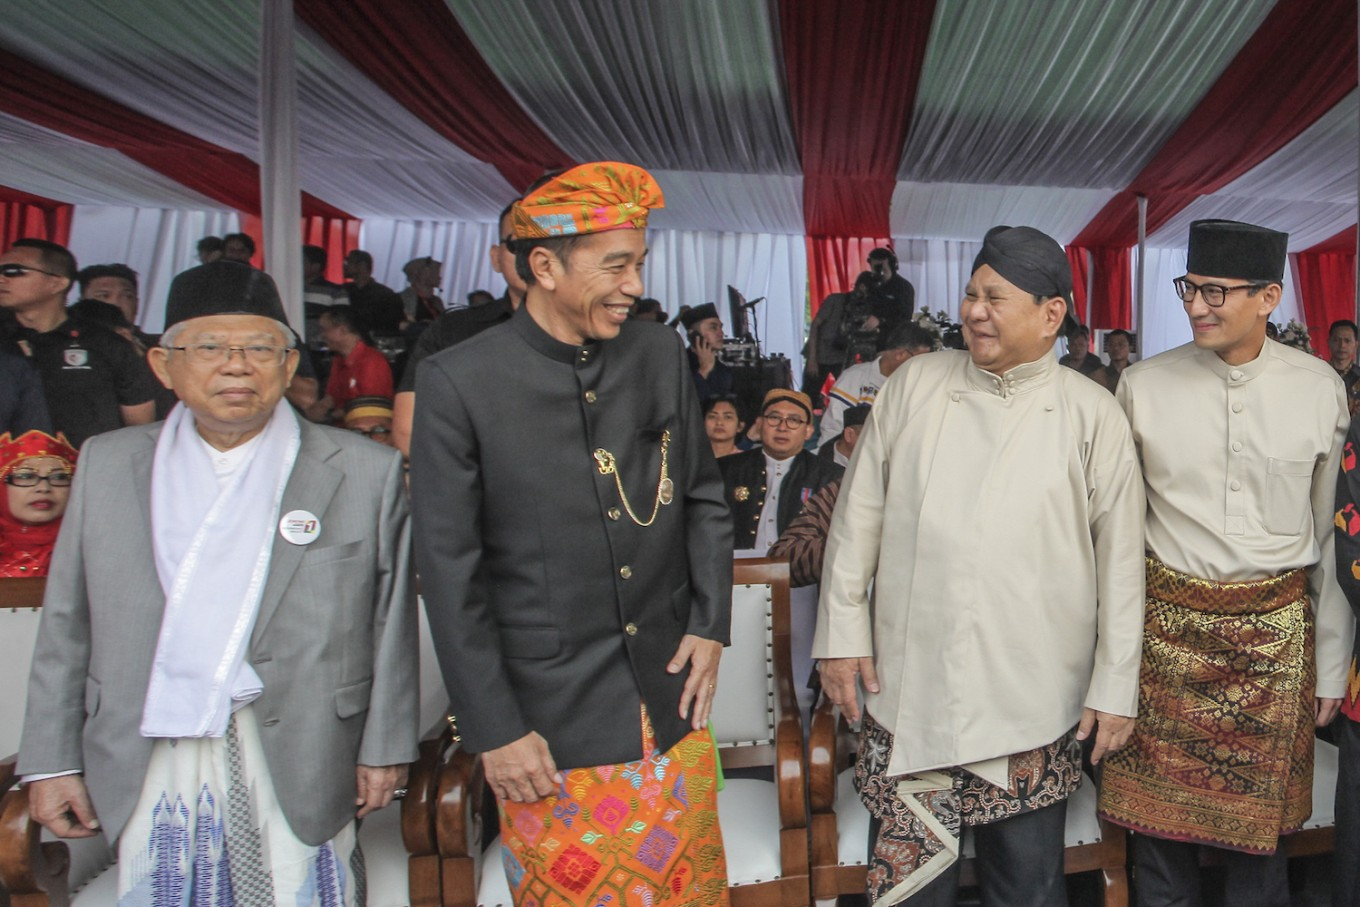 Jokowi, Prabowo campaigns highlight sharia-based economy